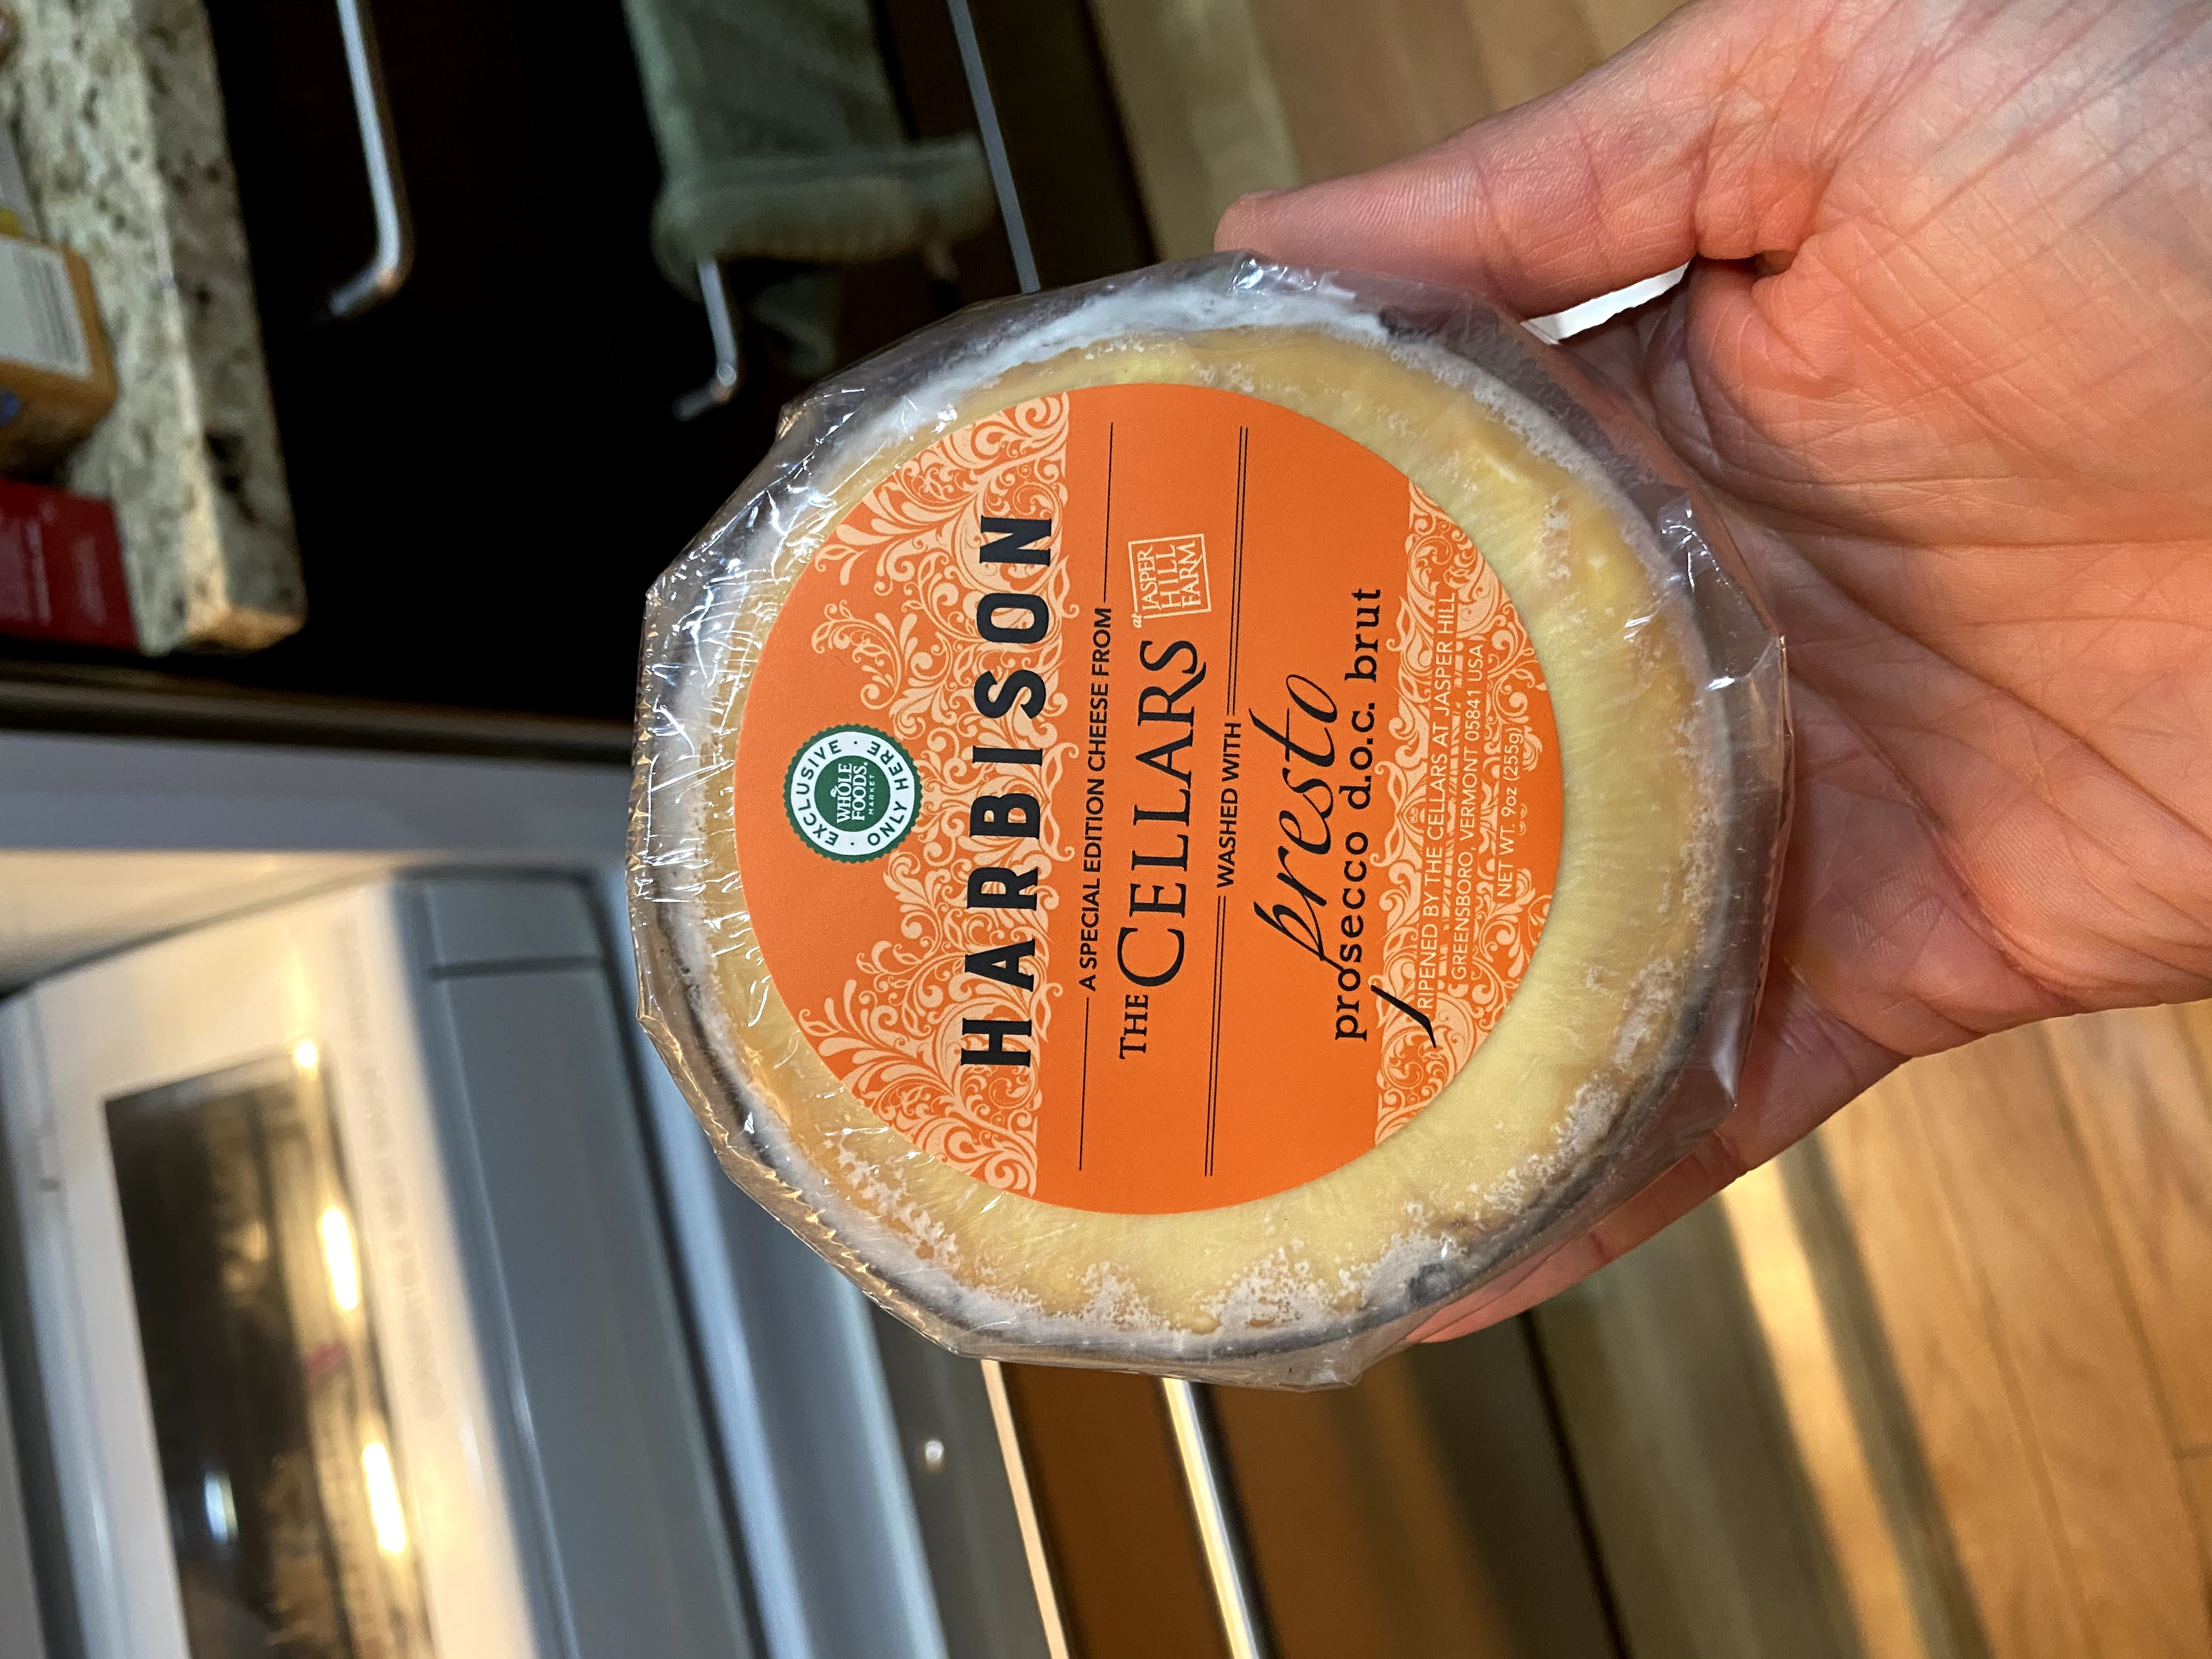 I Accidentally Bought a $25 Wedge of Cheese